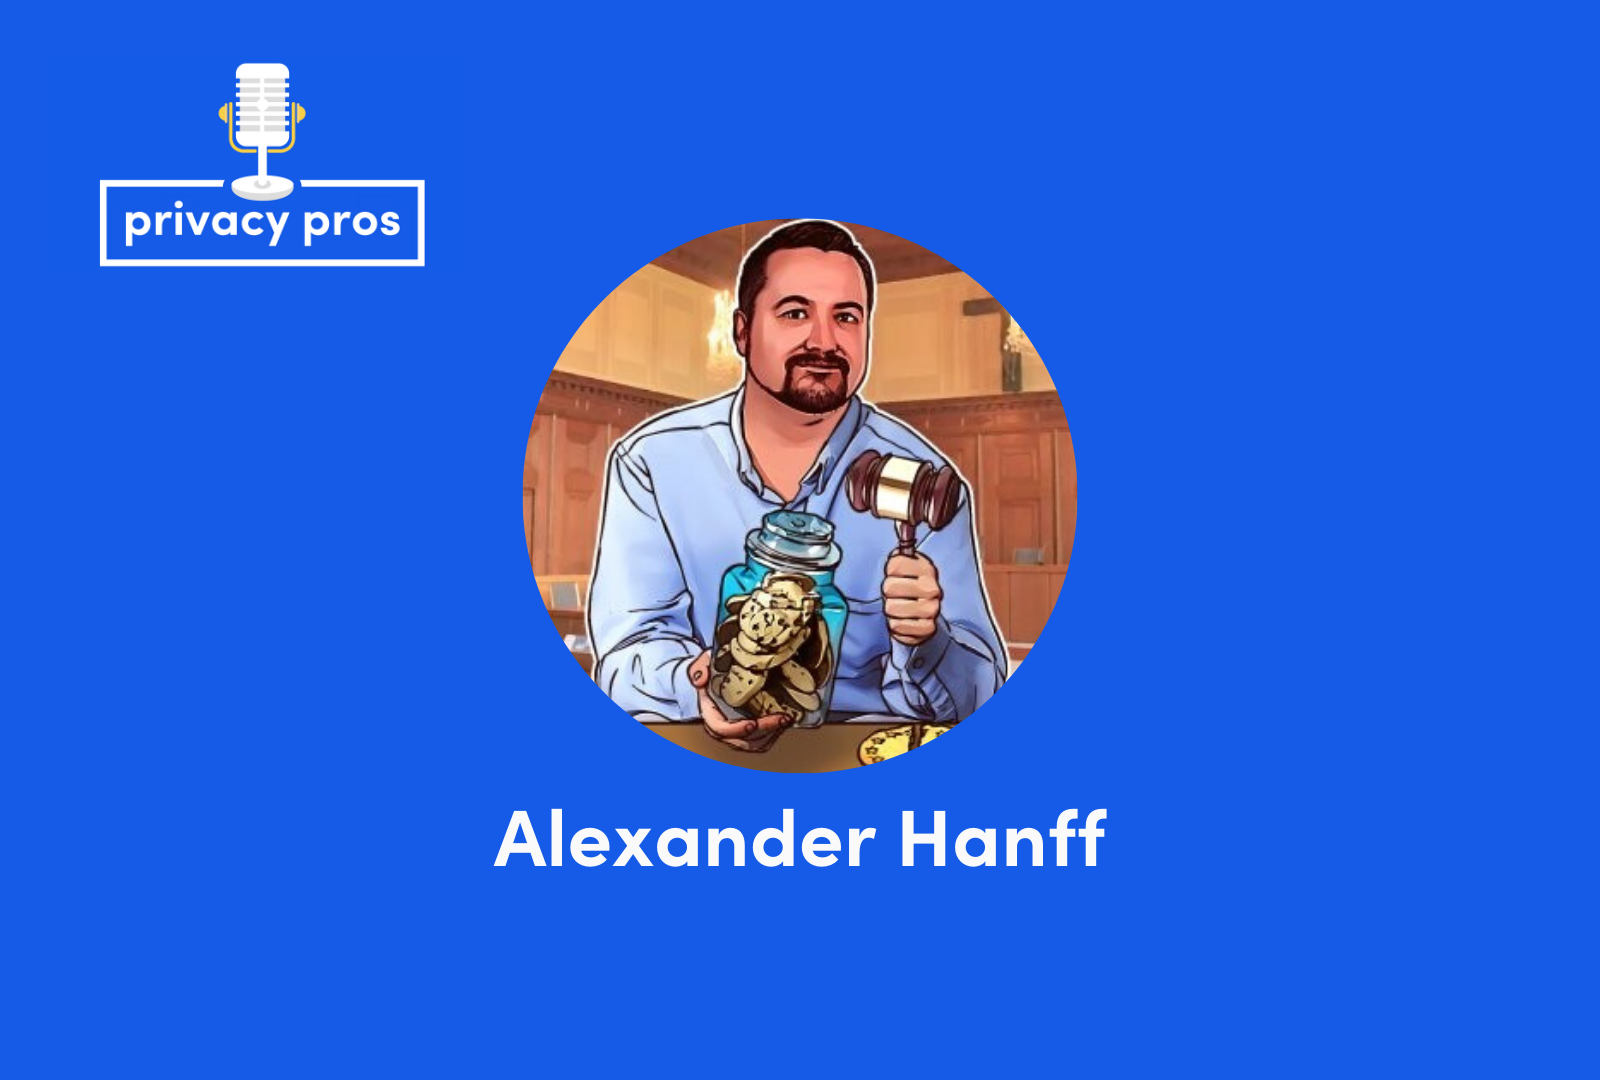 Interview with Alexander Hanff, privacy lobbyist and consultant